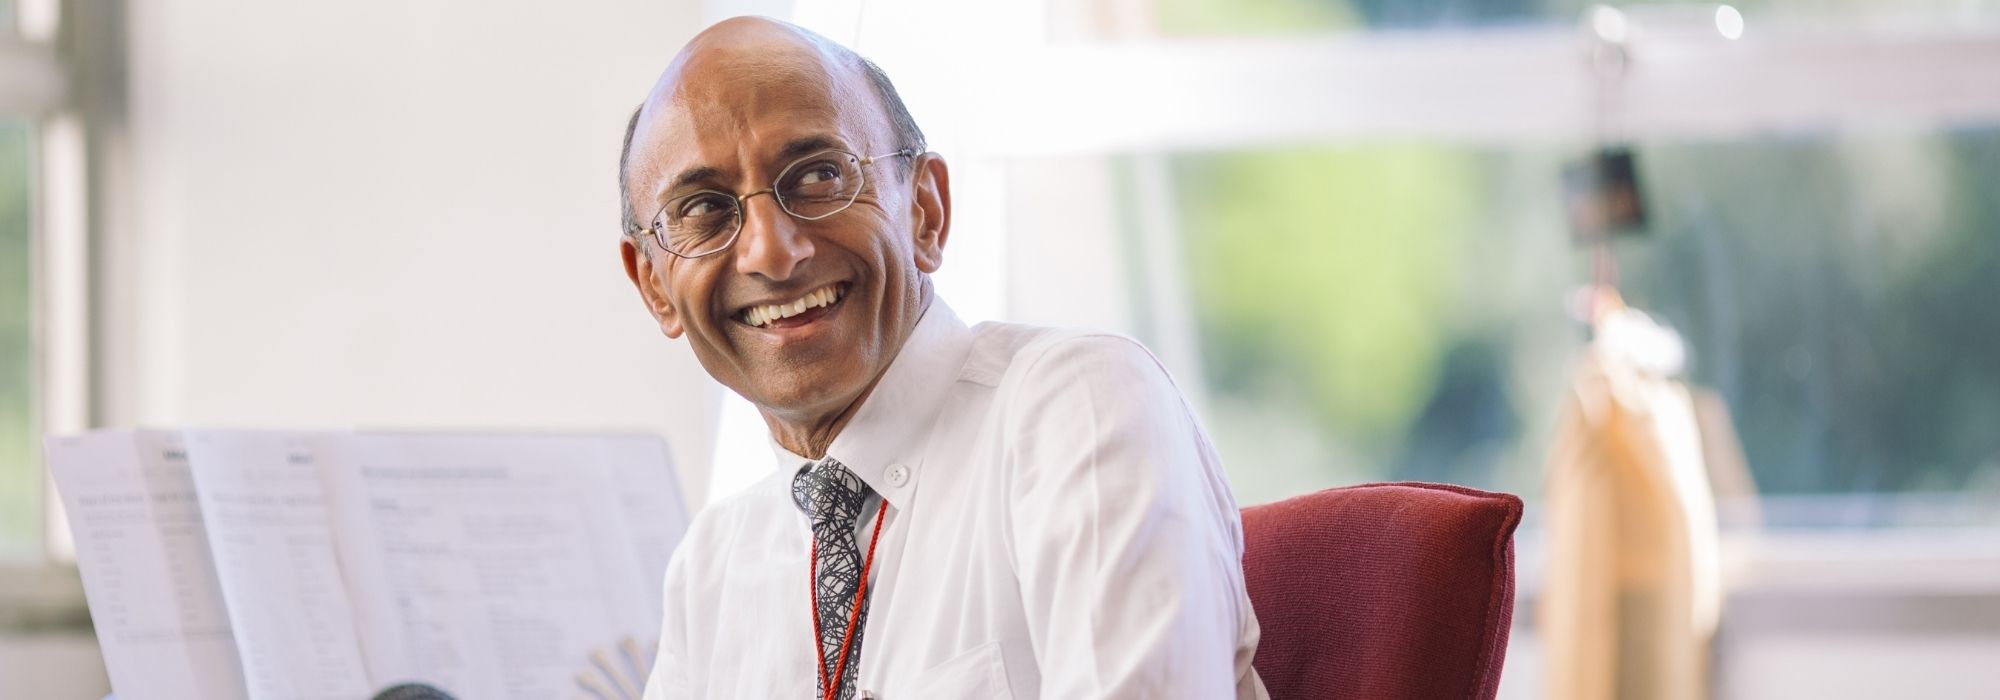 RED board member appointed as chair of Productivity Commission